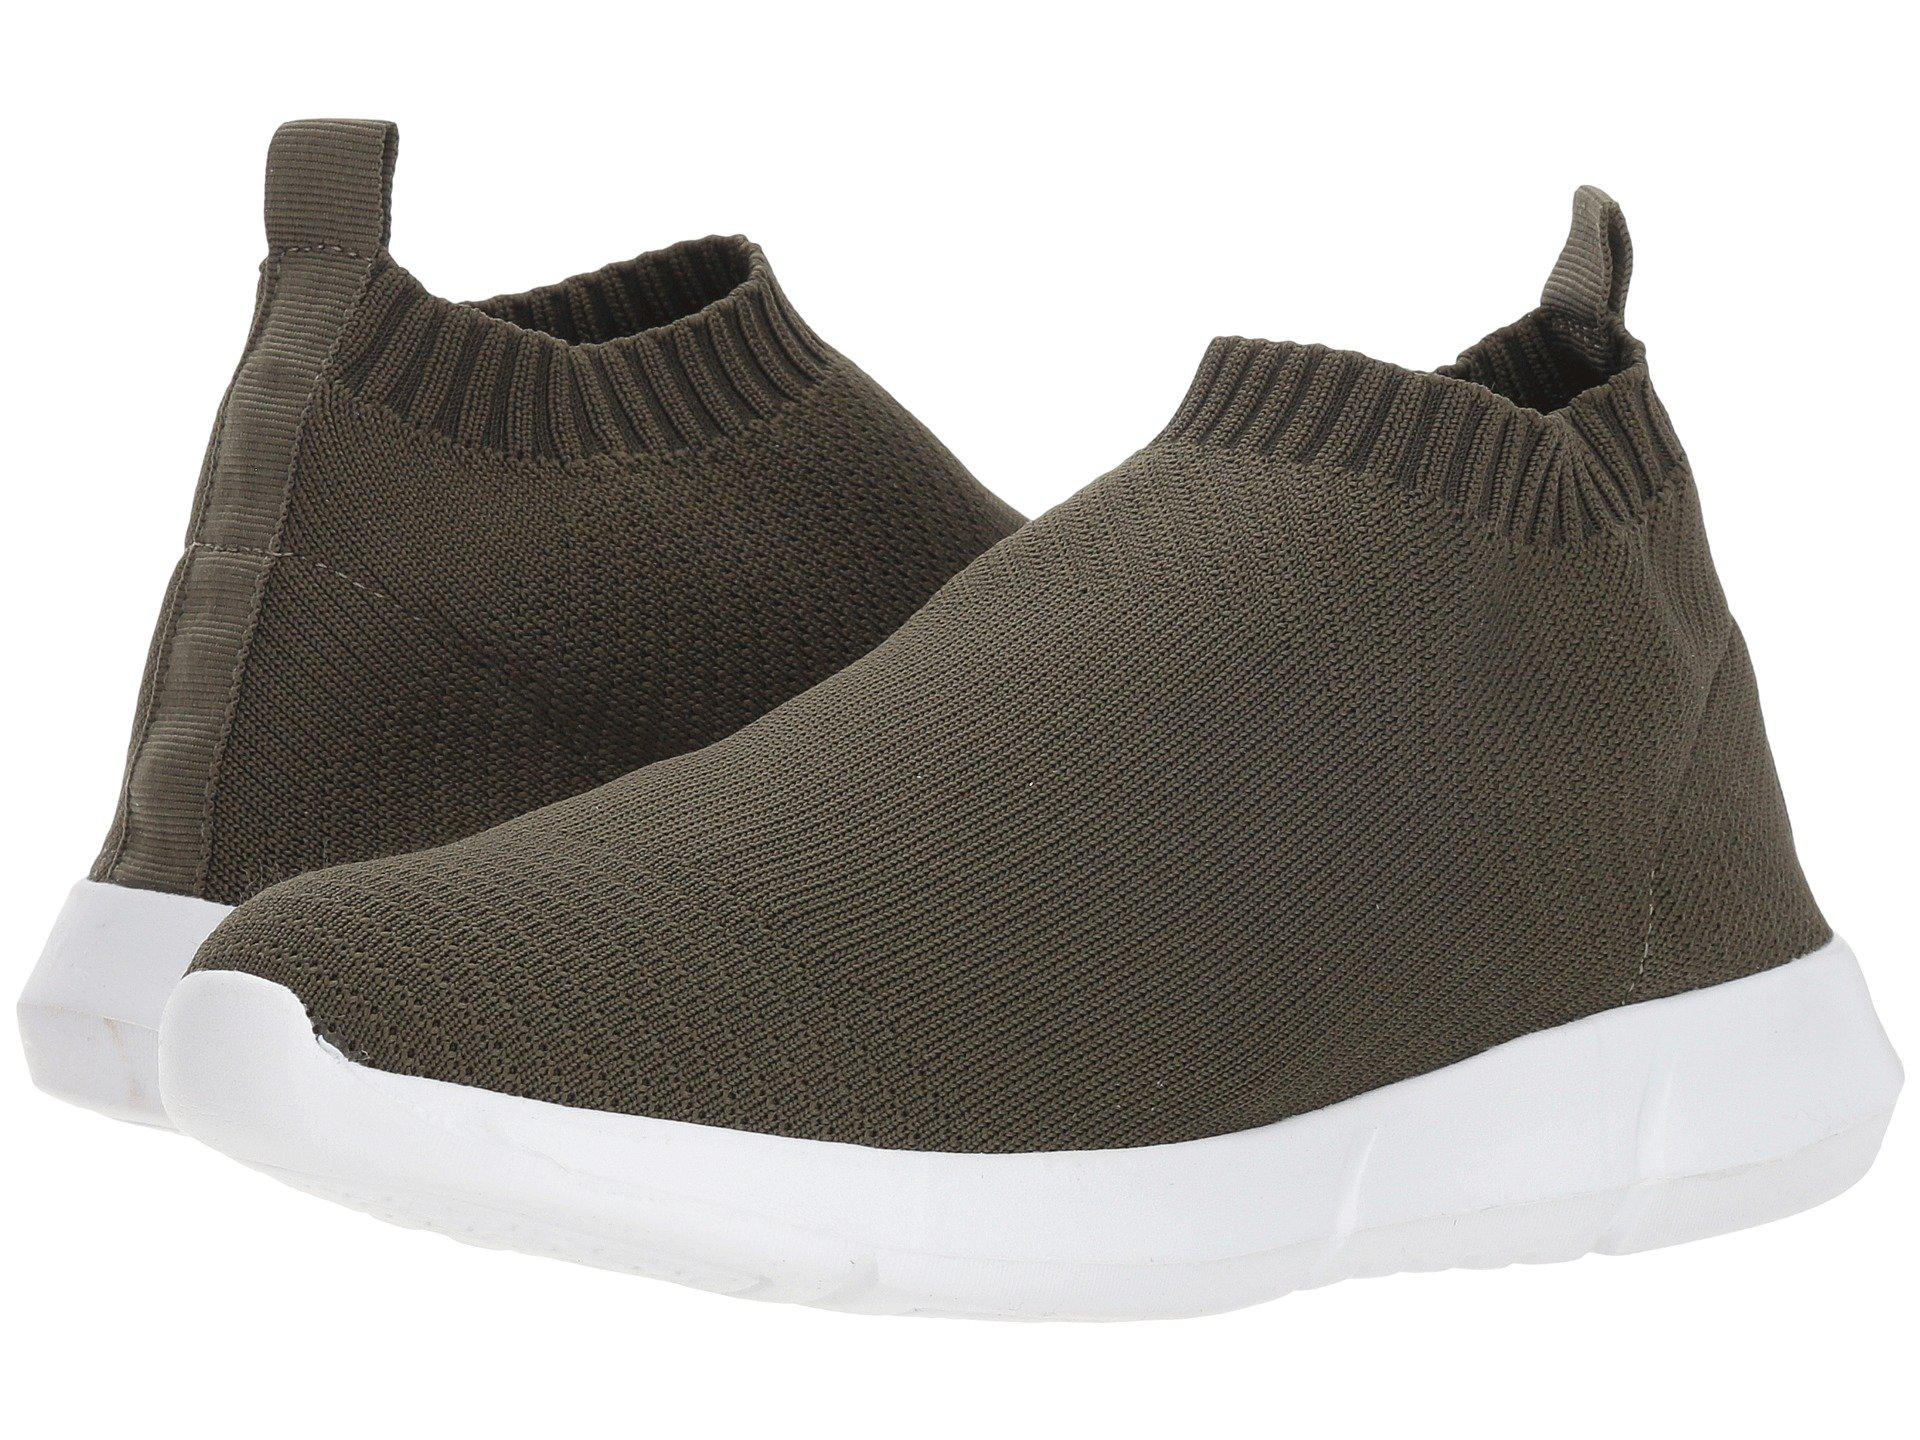 761a4b0e8c2 Details about Steven by Steve Madden Womens Fabs Hight Top Slip On Fashion  Sneakers